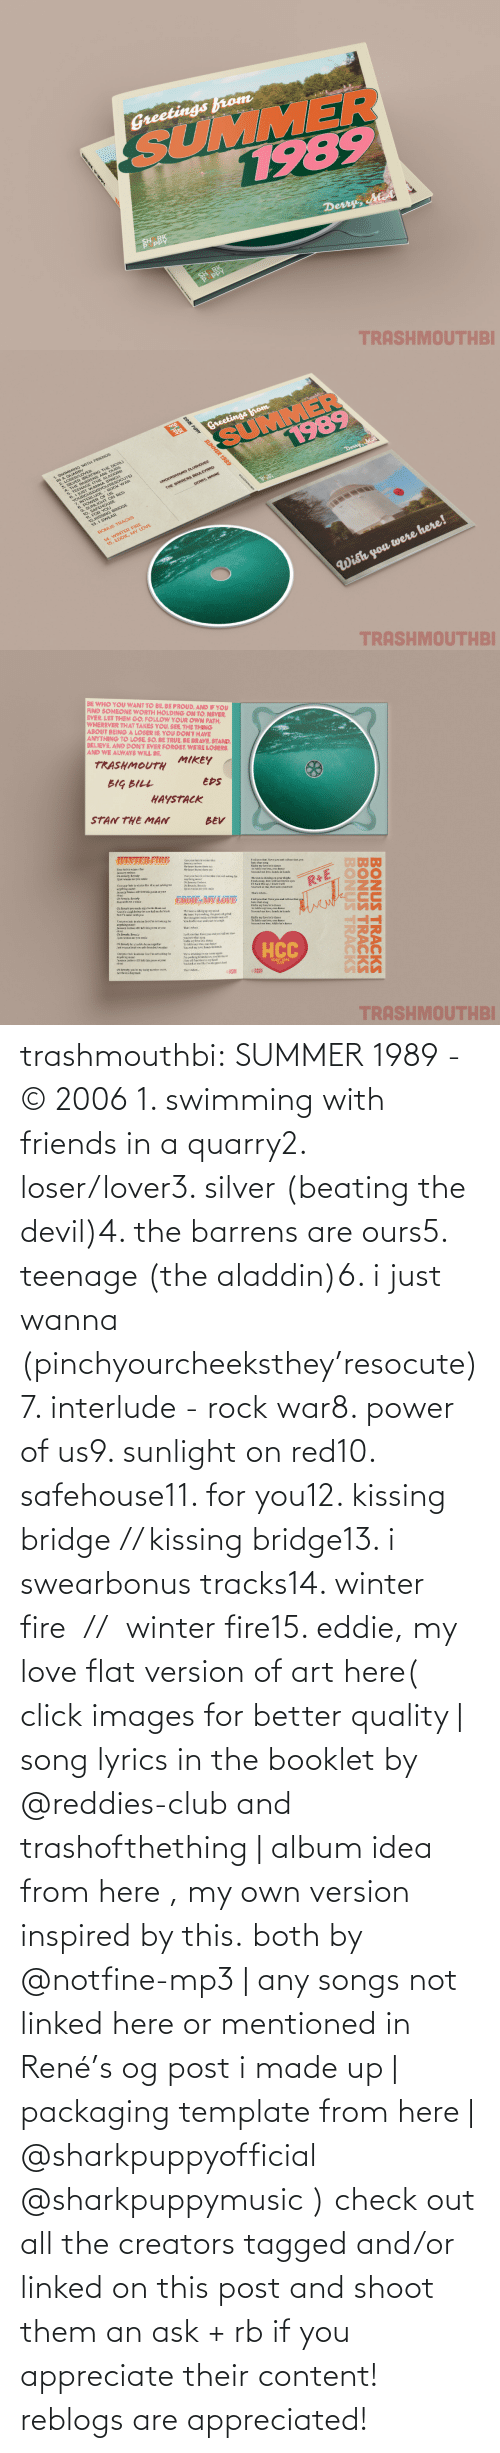 Puppy: trashmouthbi: SUMMER 1989 - © 2006 1. swimming with friends in a quarry2. loser/lover3. silver (beating the devil)4. the barrens are ours5. teenage (the aladdin)6. i just wanna (pinchyourcheeksthey'resocute)7. interlude - rock war8. power of us9. sunlight on red10. safehouse11. for you12. kissing bridge // kissing bridge13. i swearbonus tracks14. winter fire  //  winter fire15. eddie, my love flat version of art here( click images for better quality | song lyrics in the booklet by @reddies-club​ and trashofthething | album idea from here , my own version inspired by this. both by @notfine-mp3​ | any songs not linked here or mentioned in René's og post i made up | packaging template from here | @sharkpuppyofficial​ @sharkpuppymusic​ ) check out all the creators tagged and/or linked on this post and shoot them an ask + rb if you appreciate their content! reblogs are appreciated!